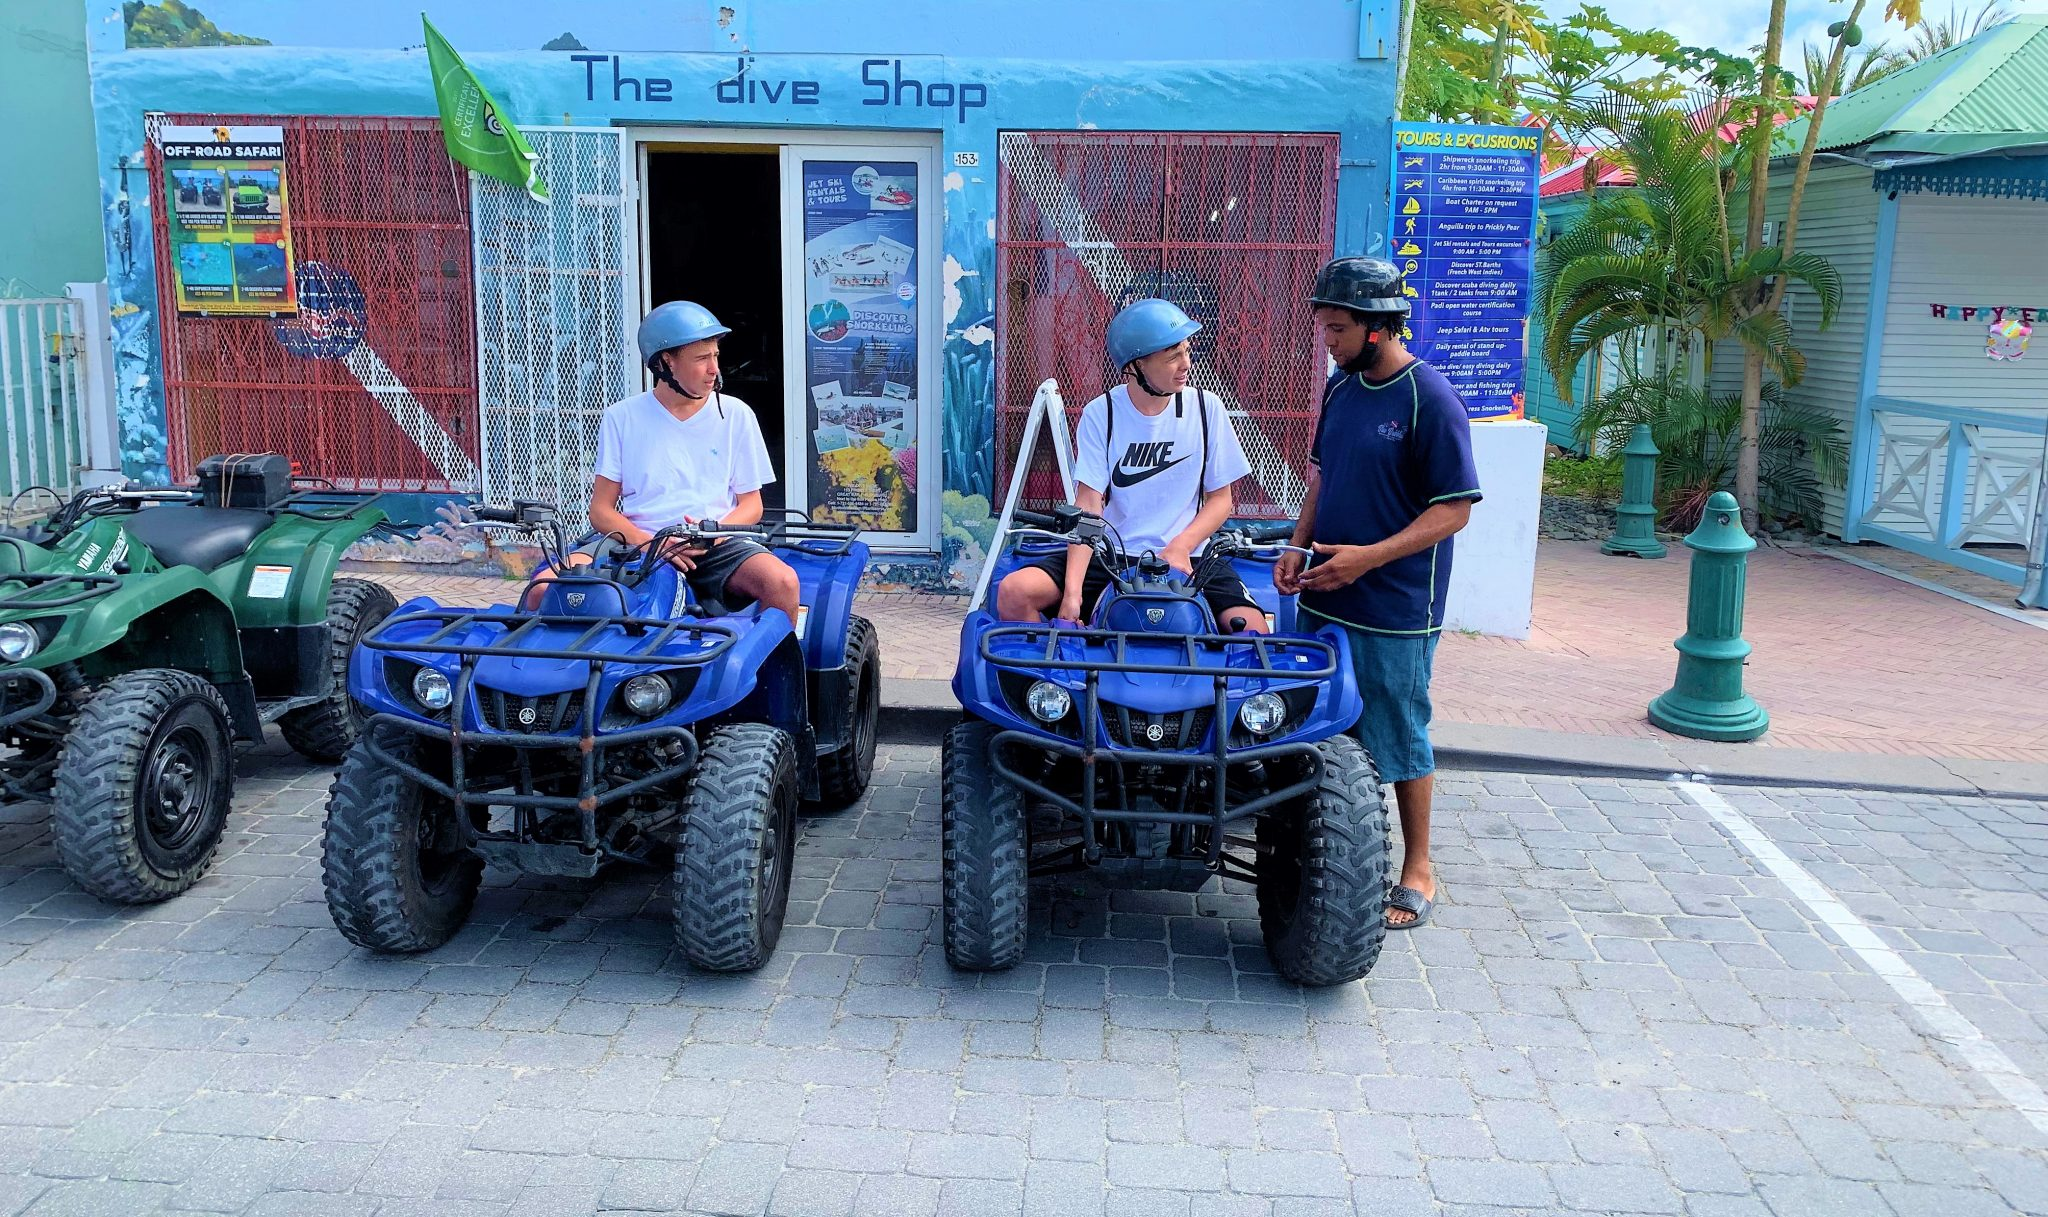 St. Maarten Safari : Guided Island Tours by ATV and Jeep Wrangler